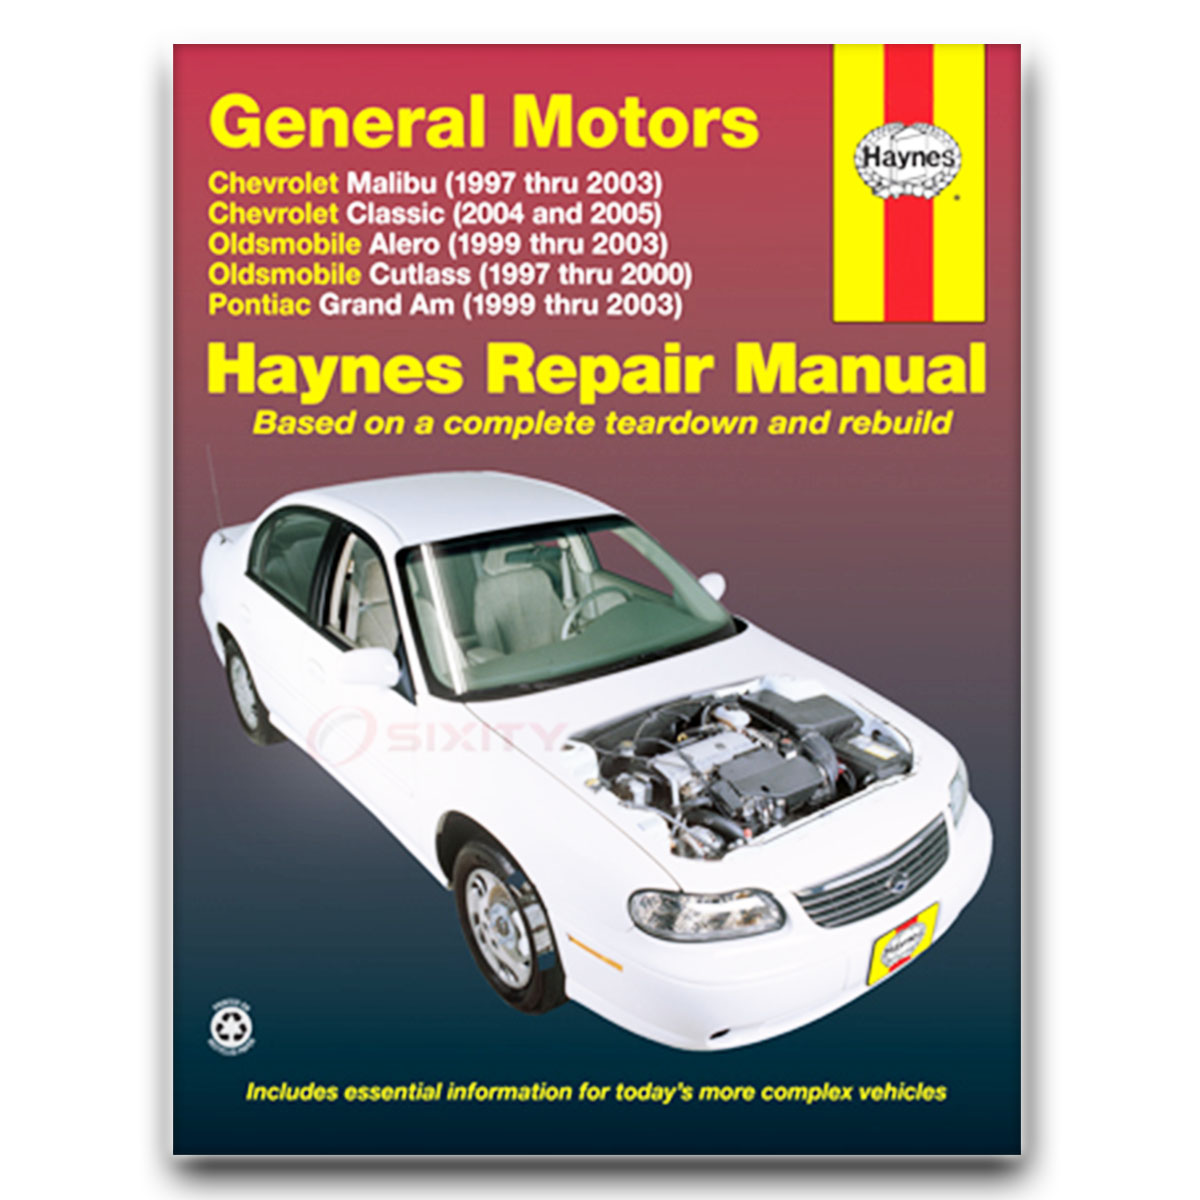 Haynes Repair Manual for Chevy Malibu LS Base Shop Service Garage Book xc